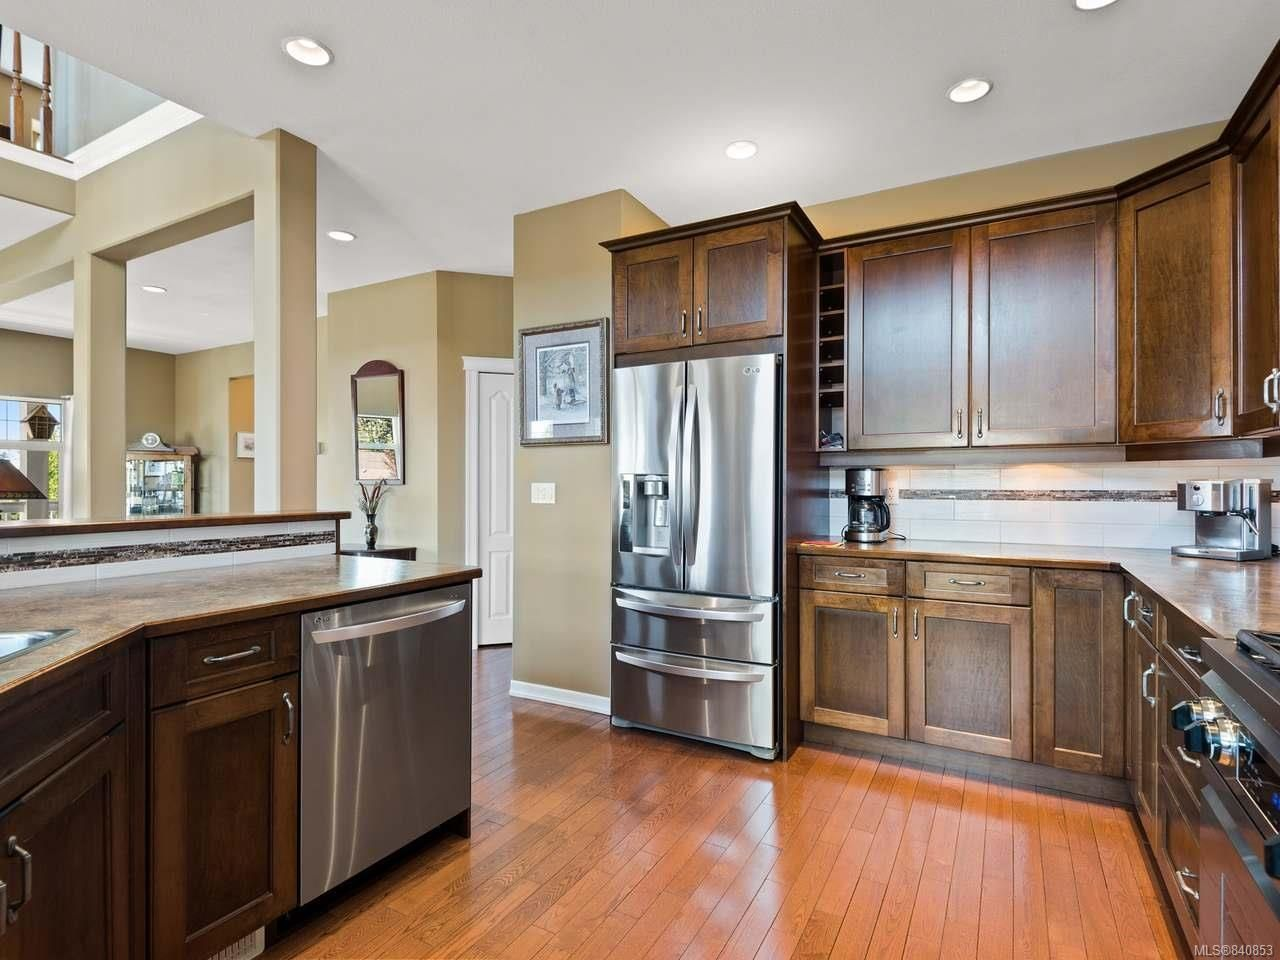 Photo 6: Photos: 206 Marie Pl in CAMPBELL RIVER: CR Willow Point House for sale (Campbell River)  : MLS®# 840853